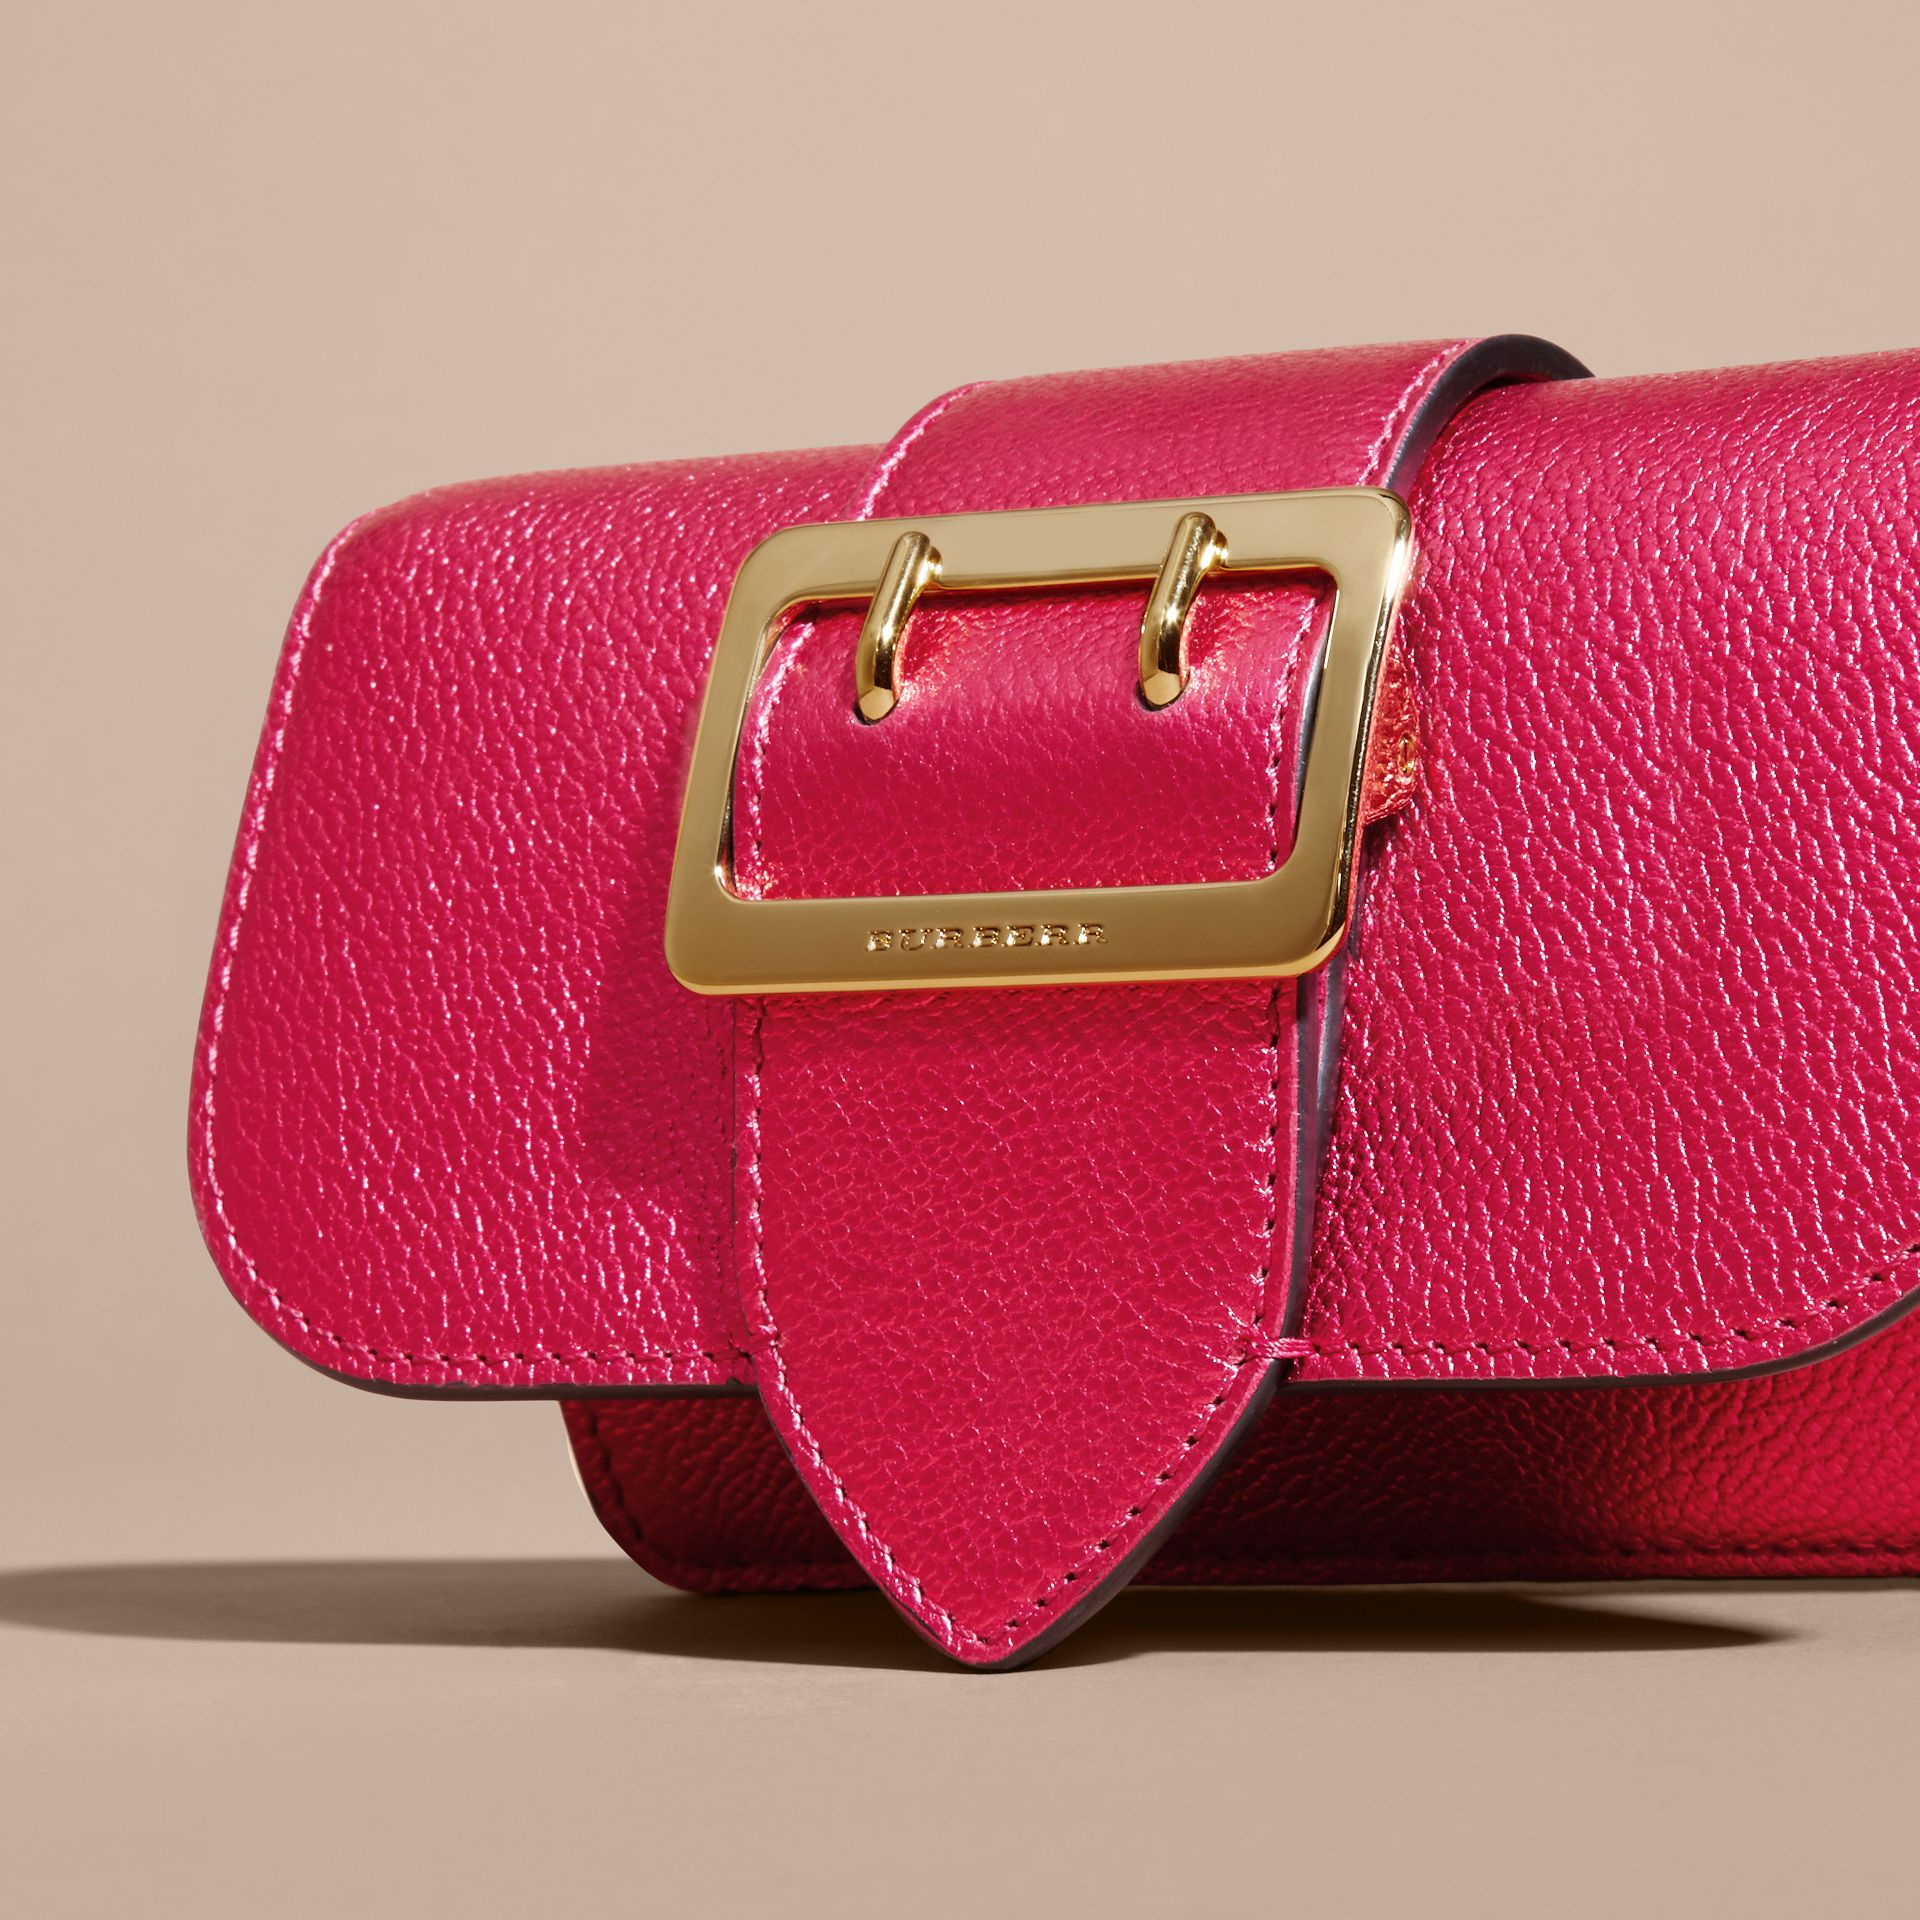 The Mini Buckle Bag in Metallic Grainy Leather in Bright Pink - gallery image 2